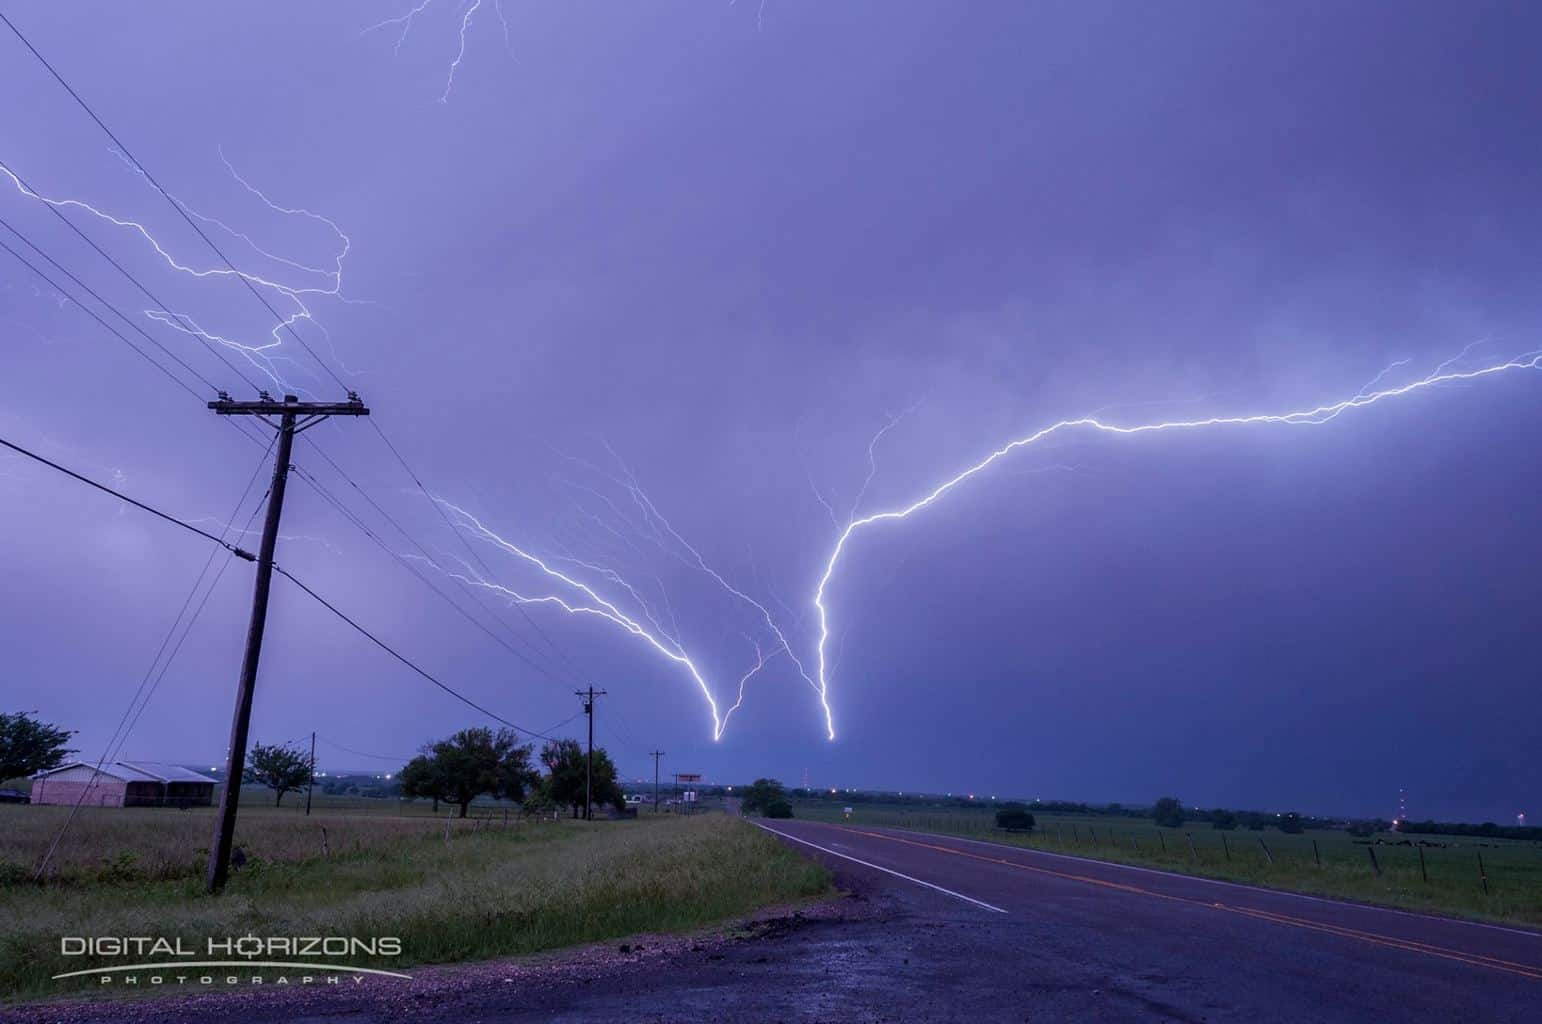 My final positive lightning strike that I will be posting from a severe thunderstorm near Bruceville-Eddy, TX on 4-27-2016. Look at the intensity of those bolts and the length of the one on the right. This a single frame not cropped or stacked. It was an awesome sight to see.